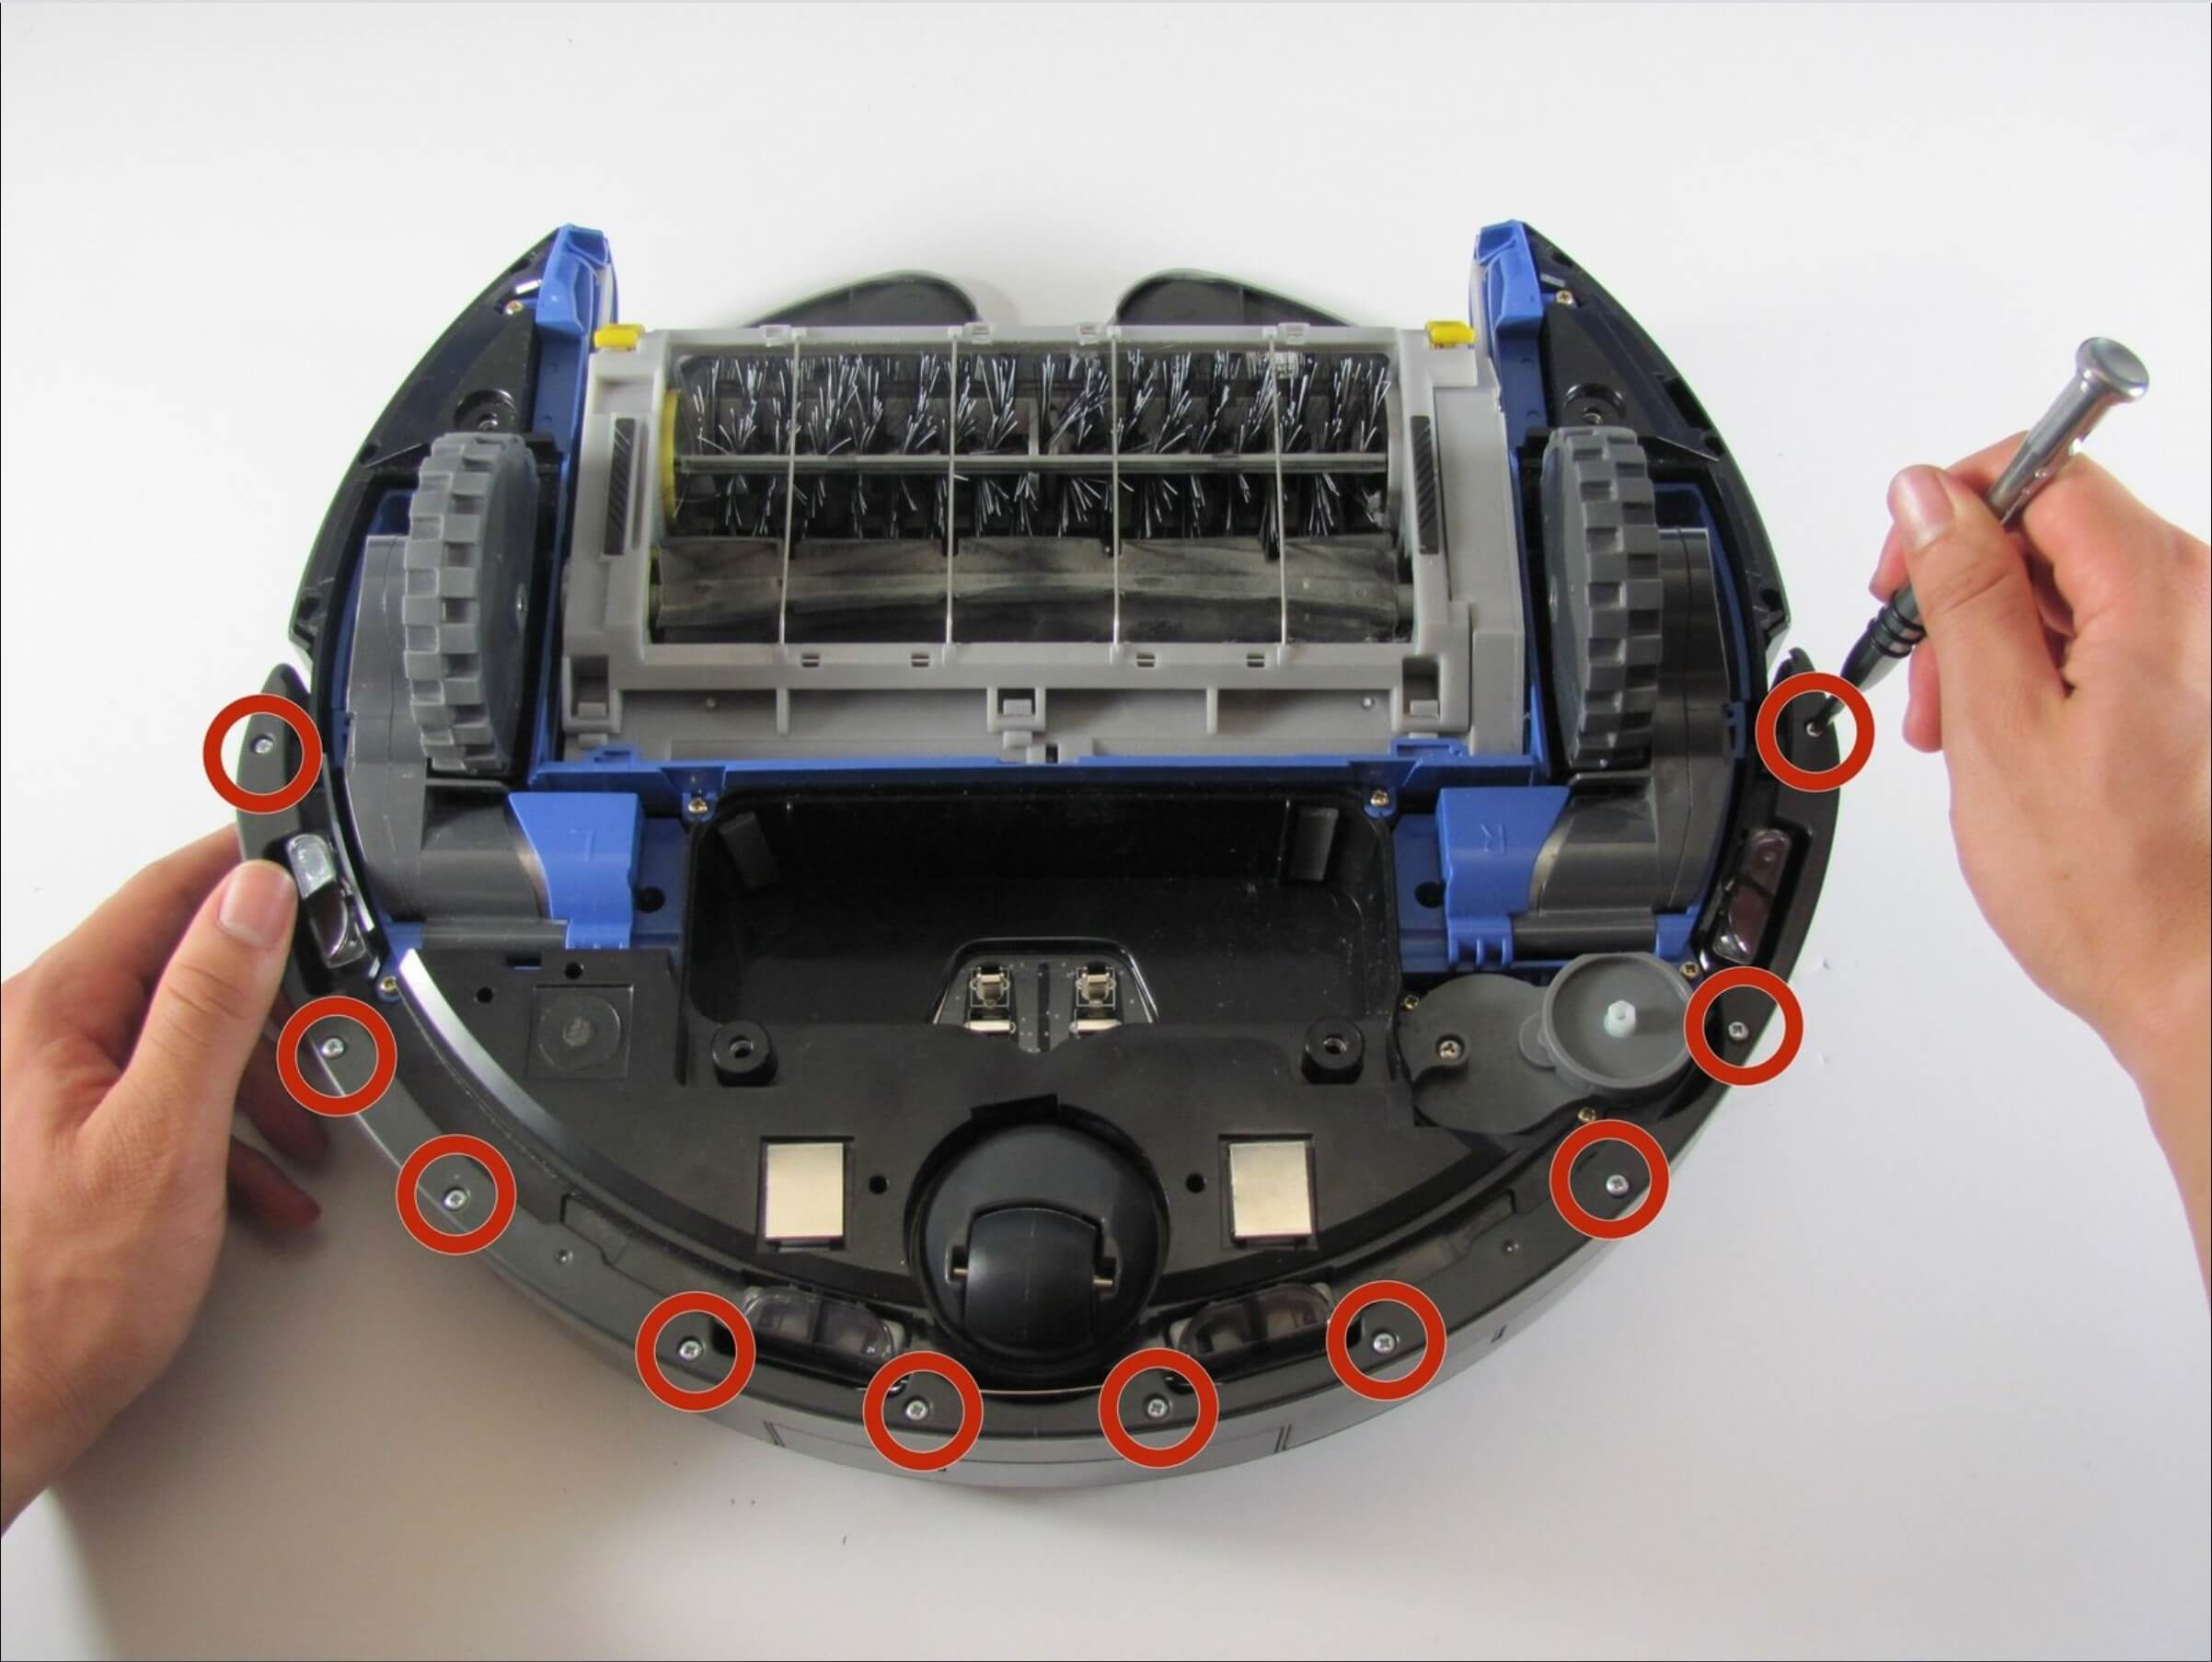 Cleaning the Roomba's bumper